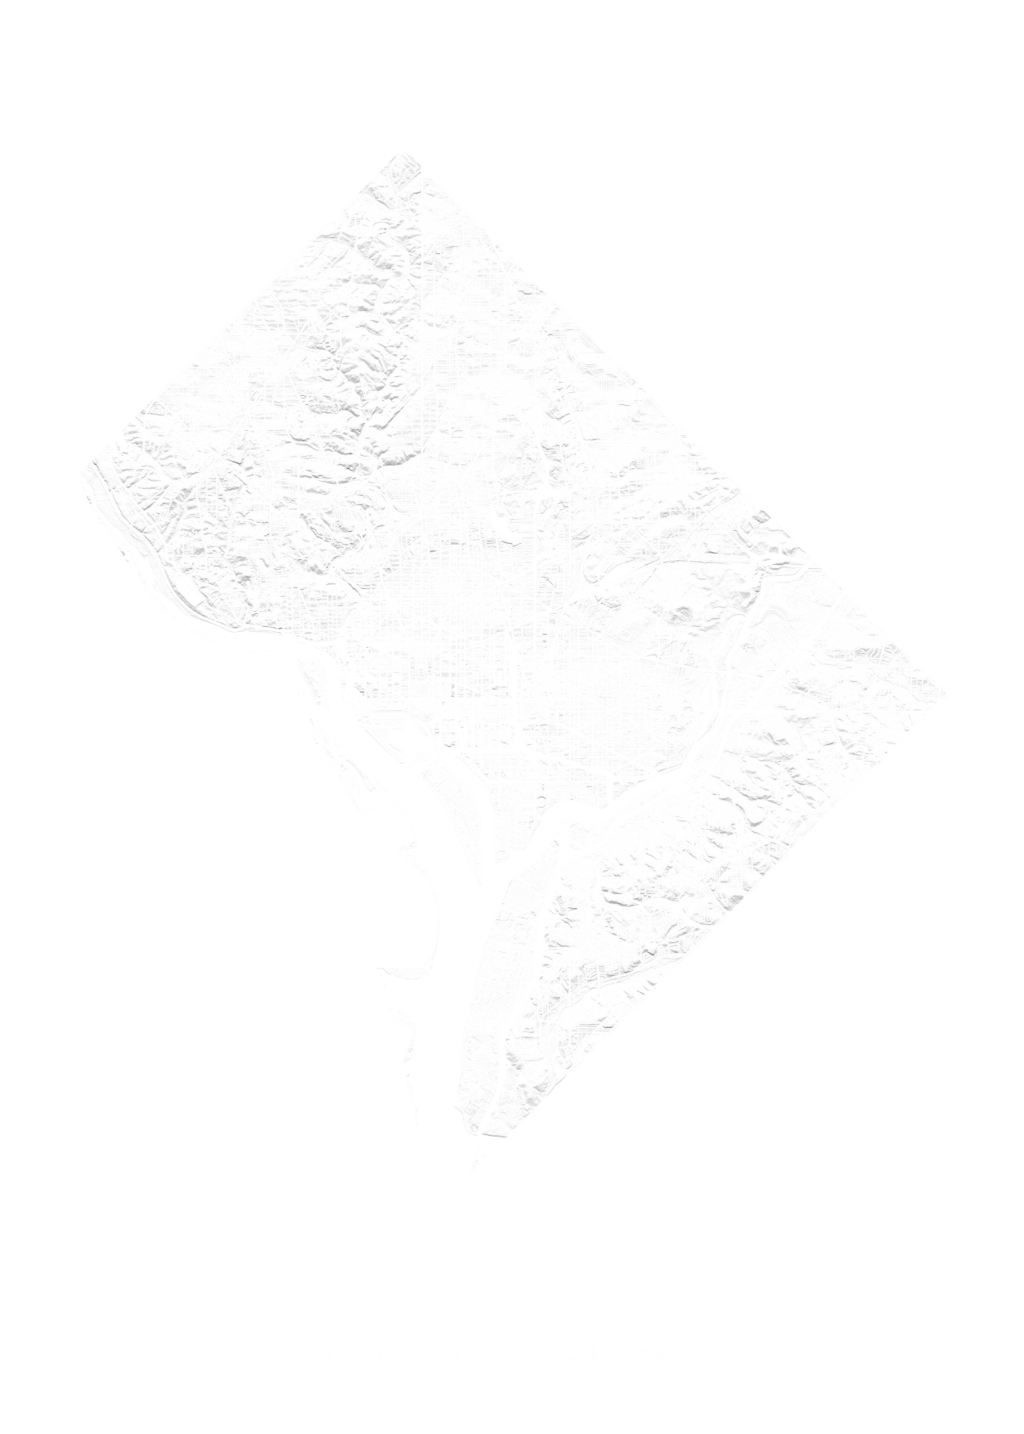 District Of Columbia wall map